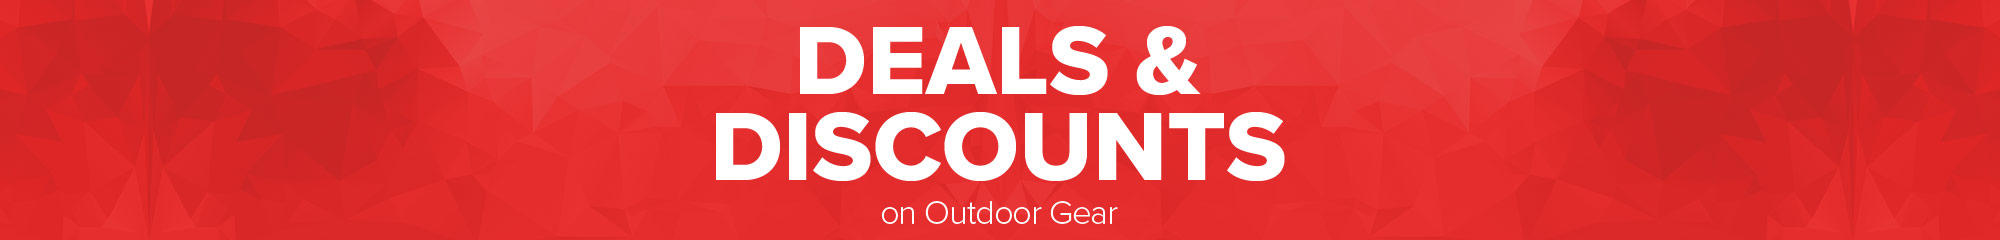 Deals and discounts on outdoor gear